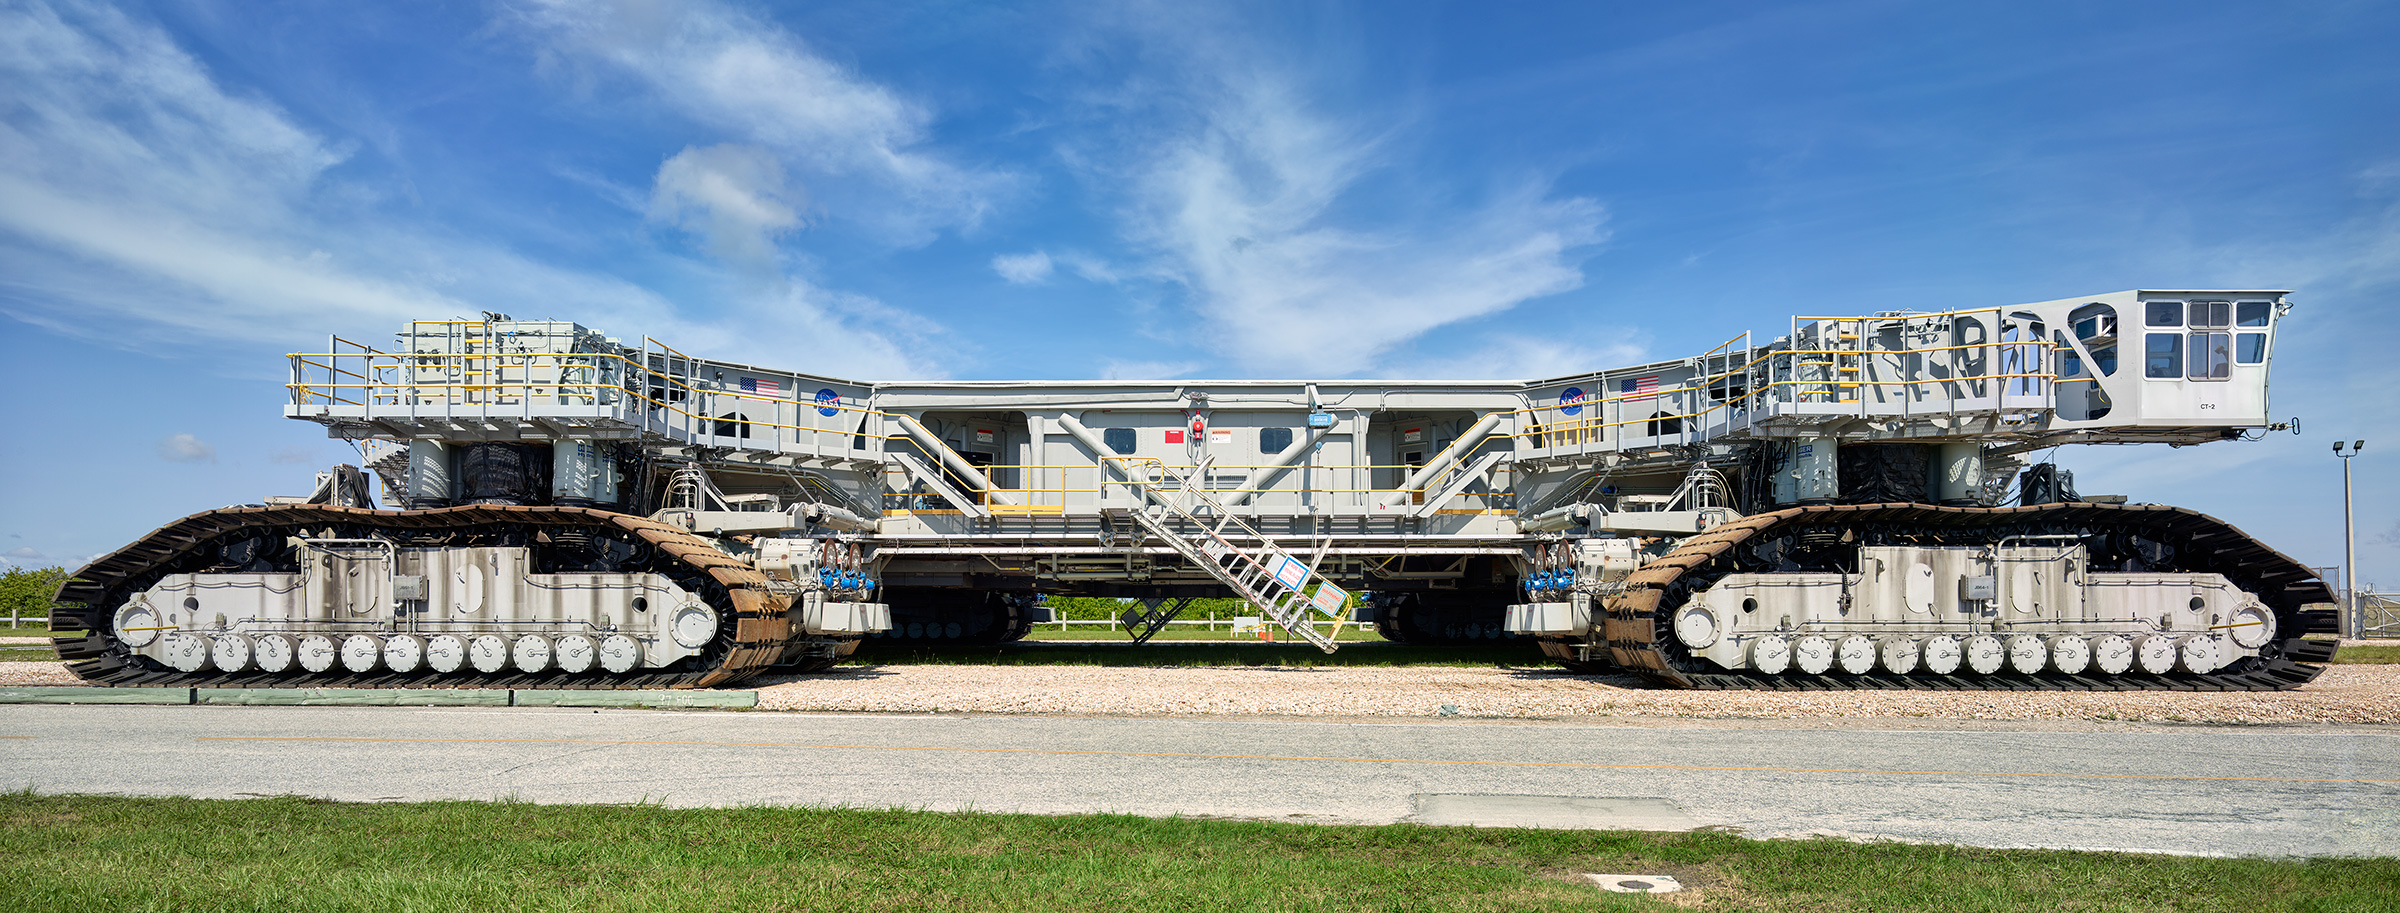 The vehicle NASA will use to transport its mobile launcher from the assembly facility to the launchpad